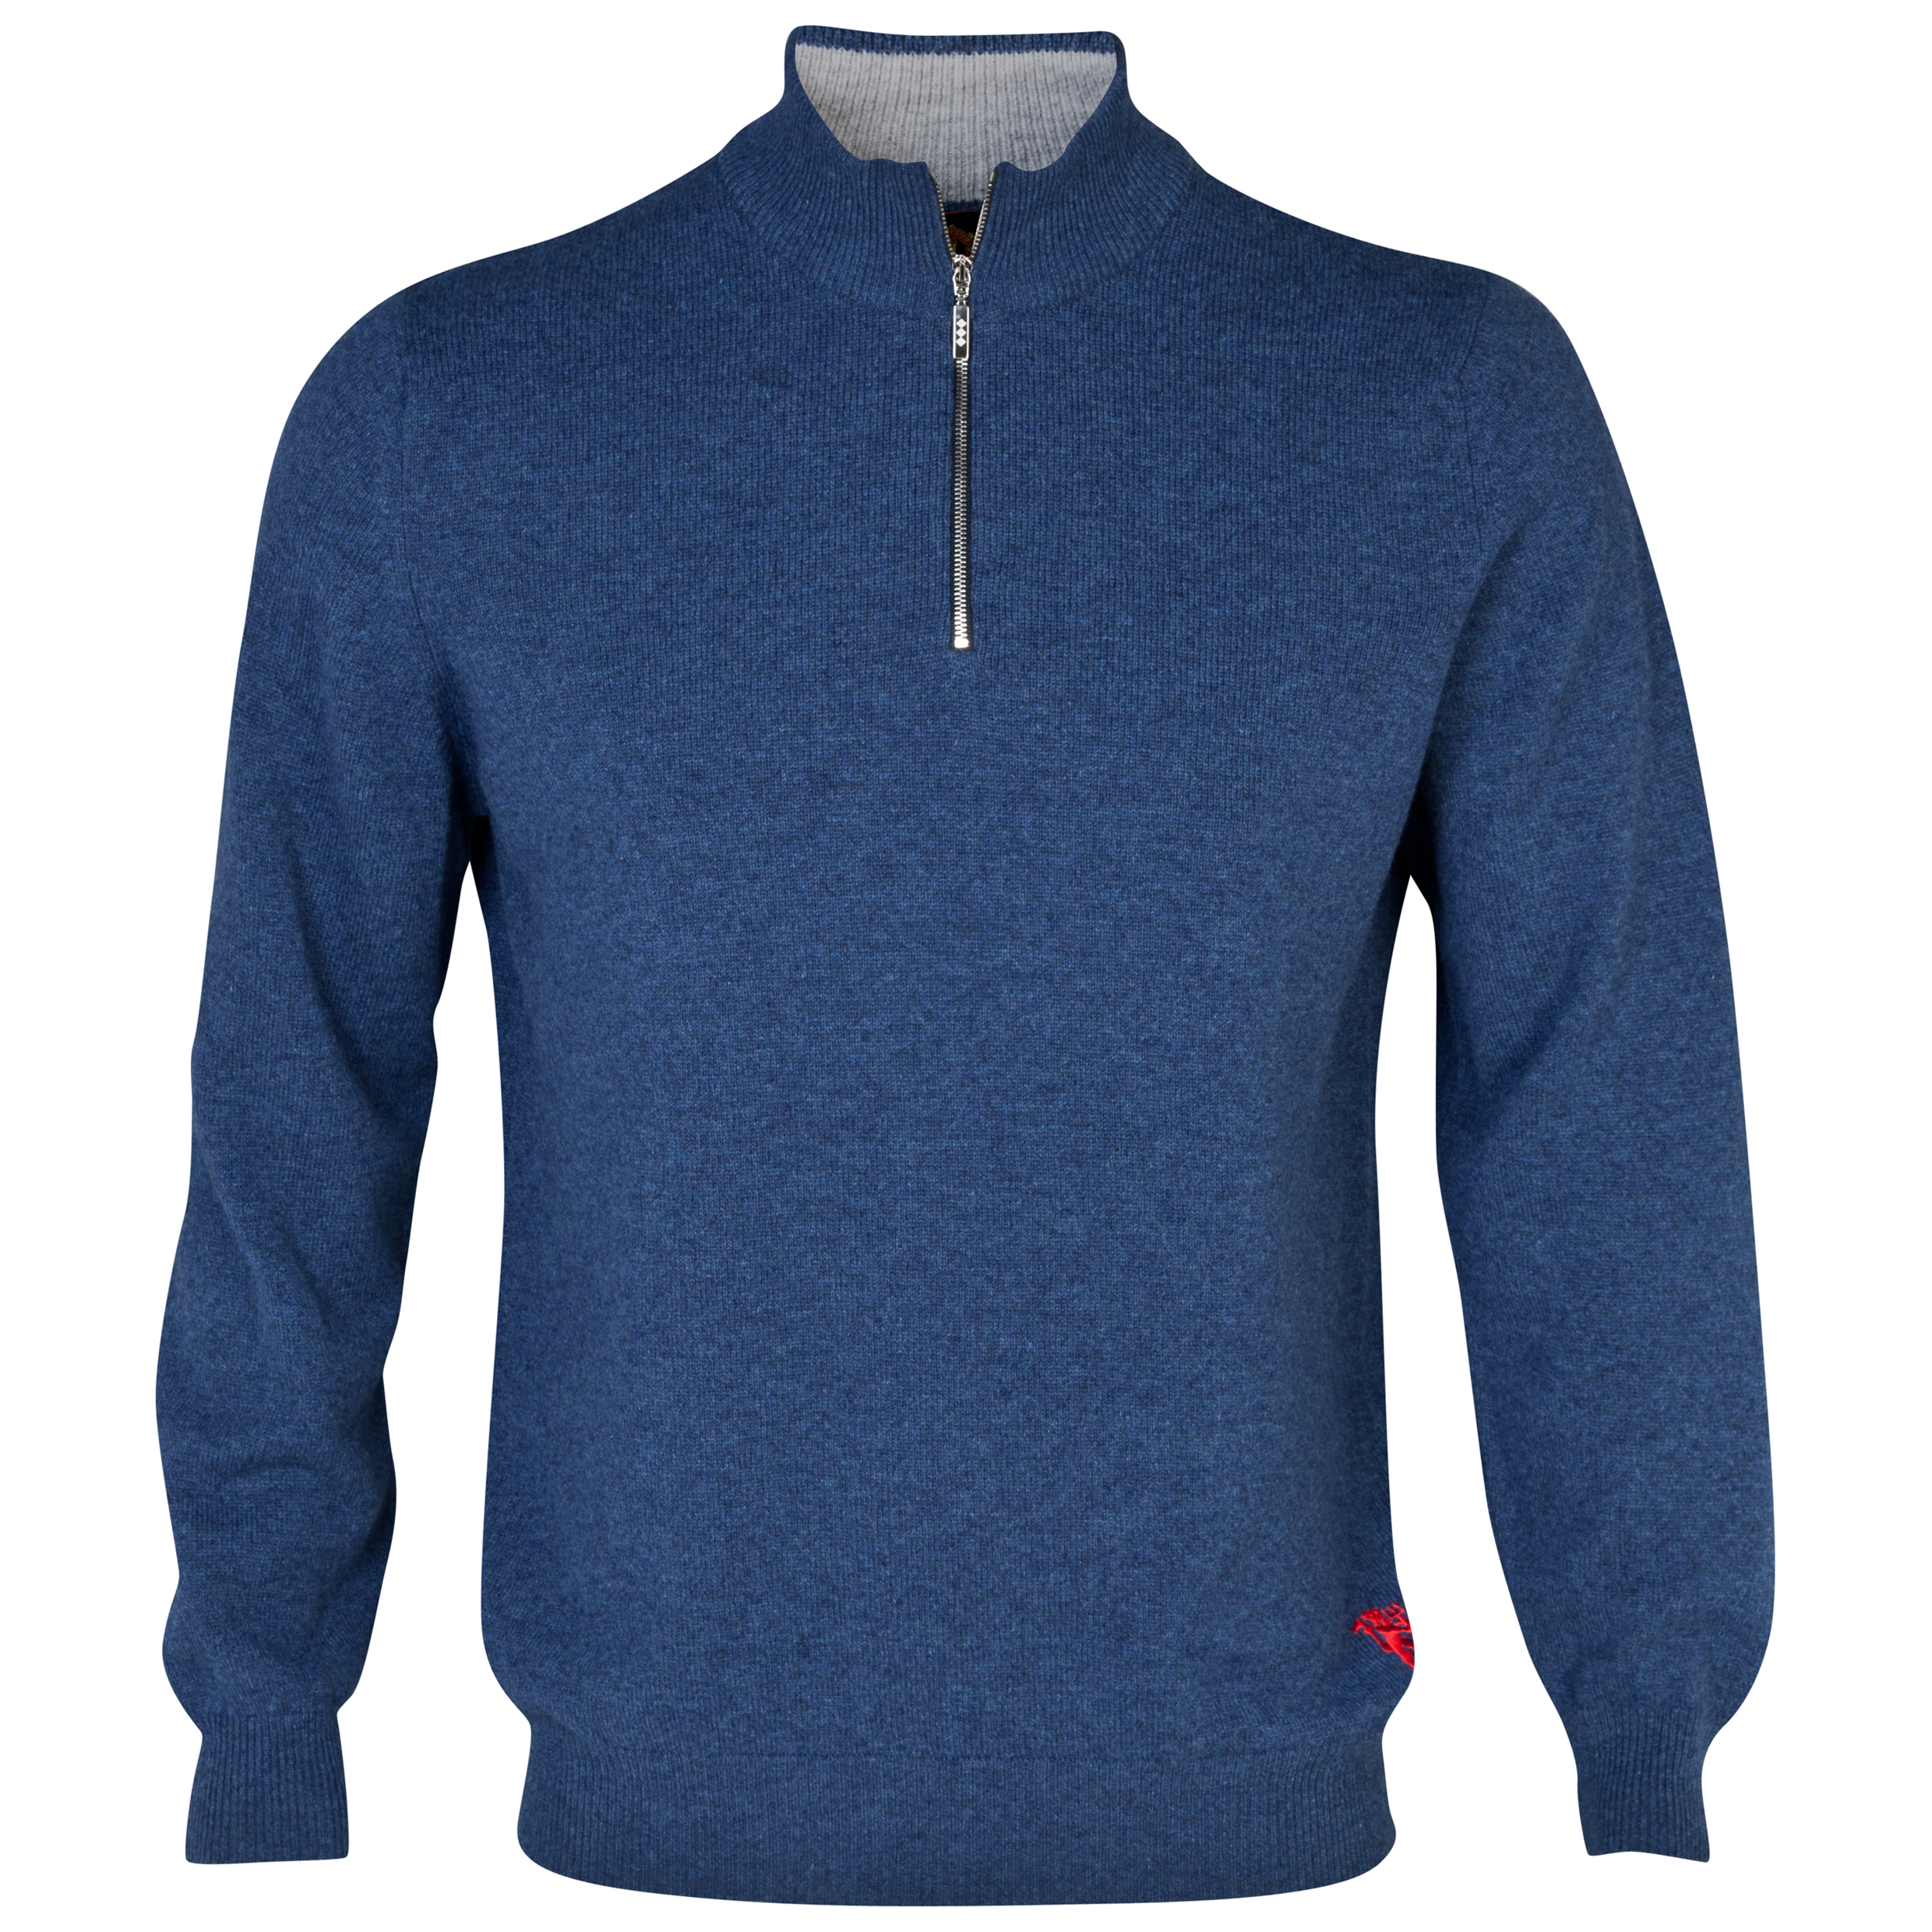 Manchester United Lambswool Zip Through Sweater - Mens Blue